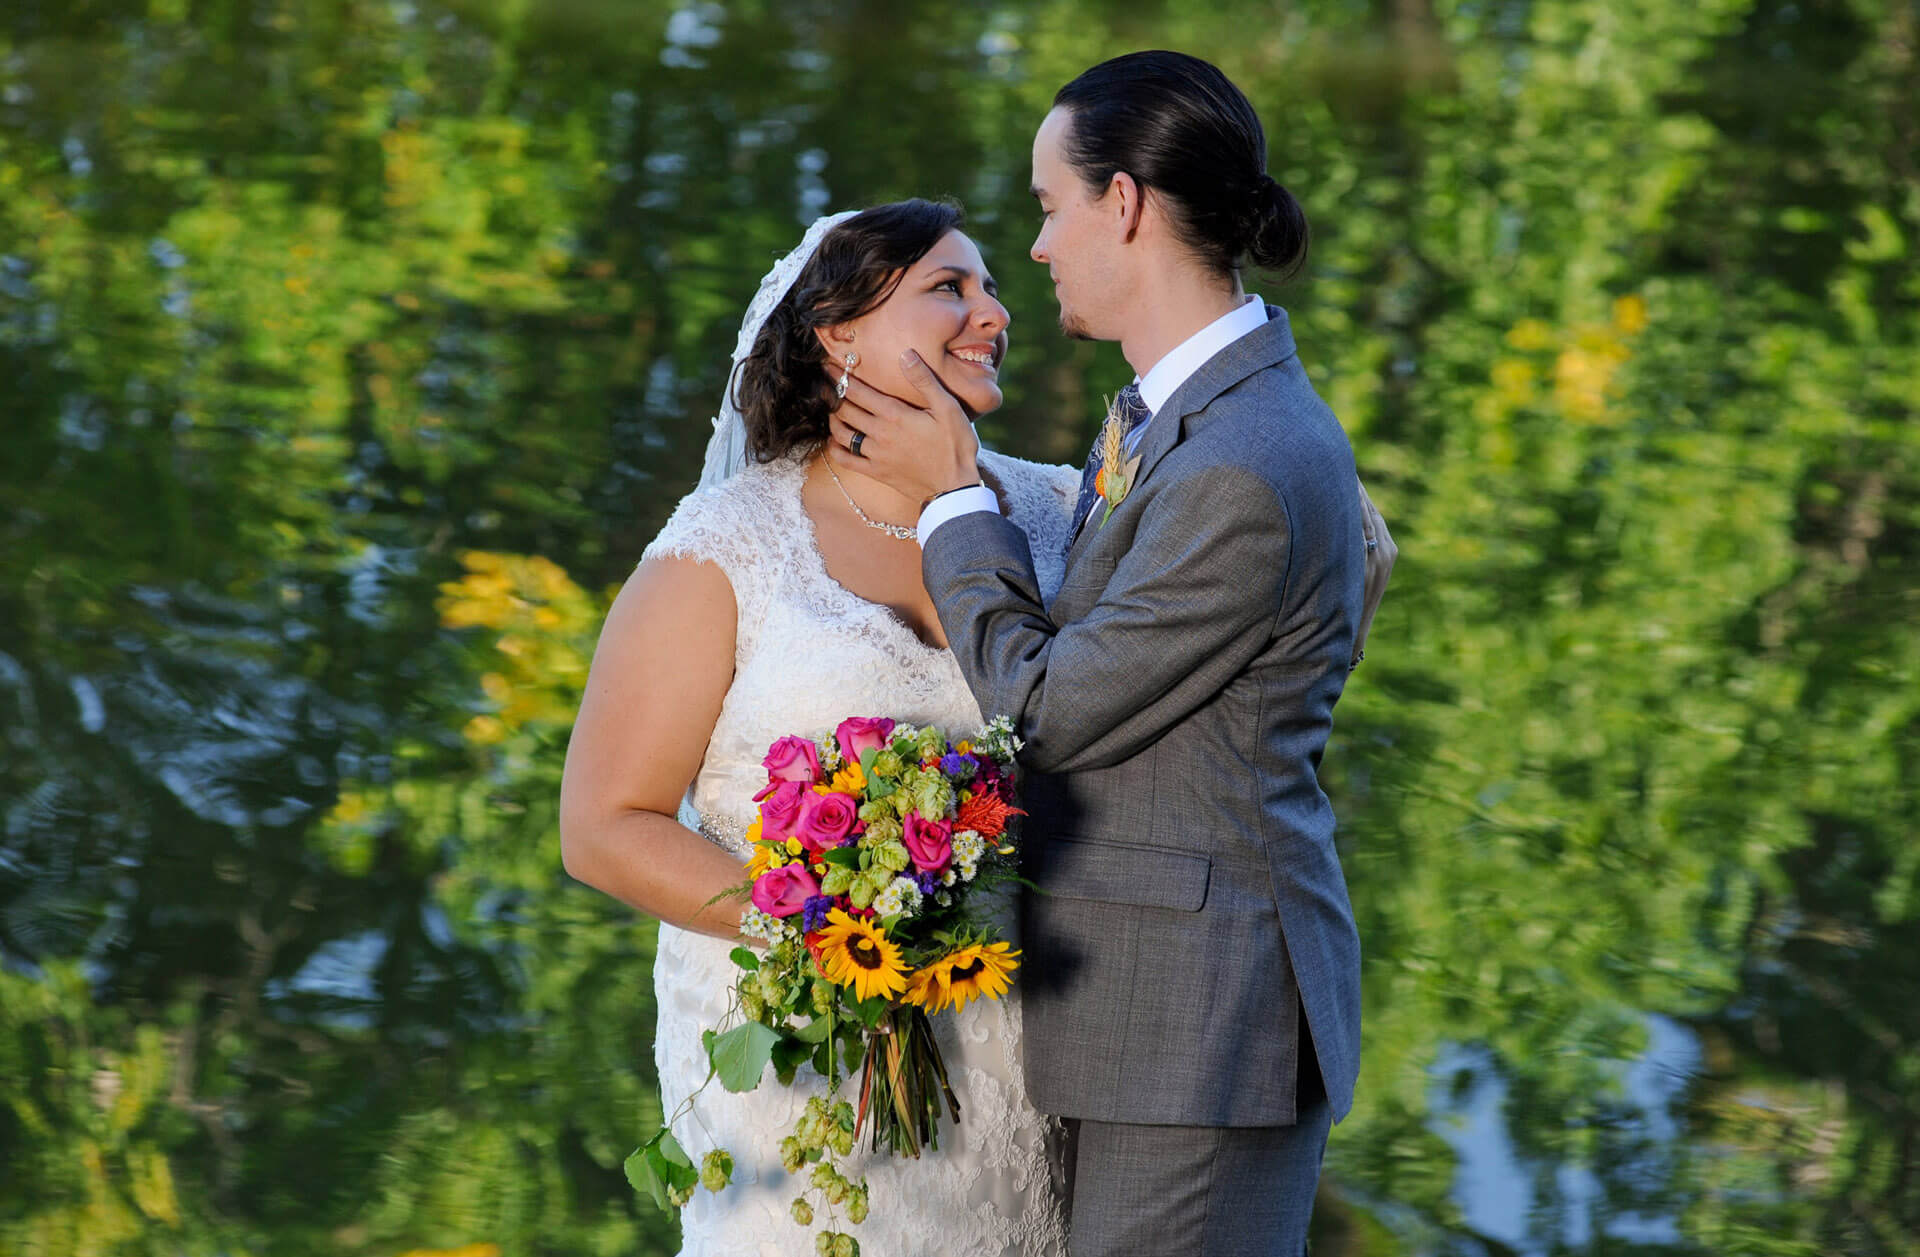 The bride and groom take a quite moment in Frankenmuth, Michigan along the river where trees are reflected in the water.